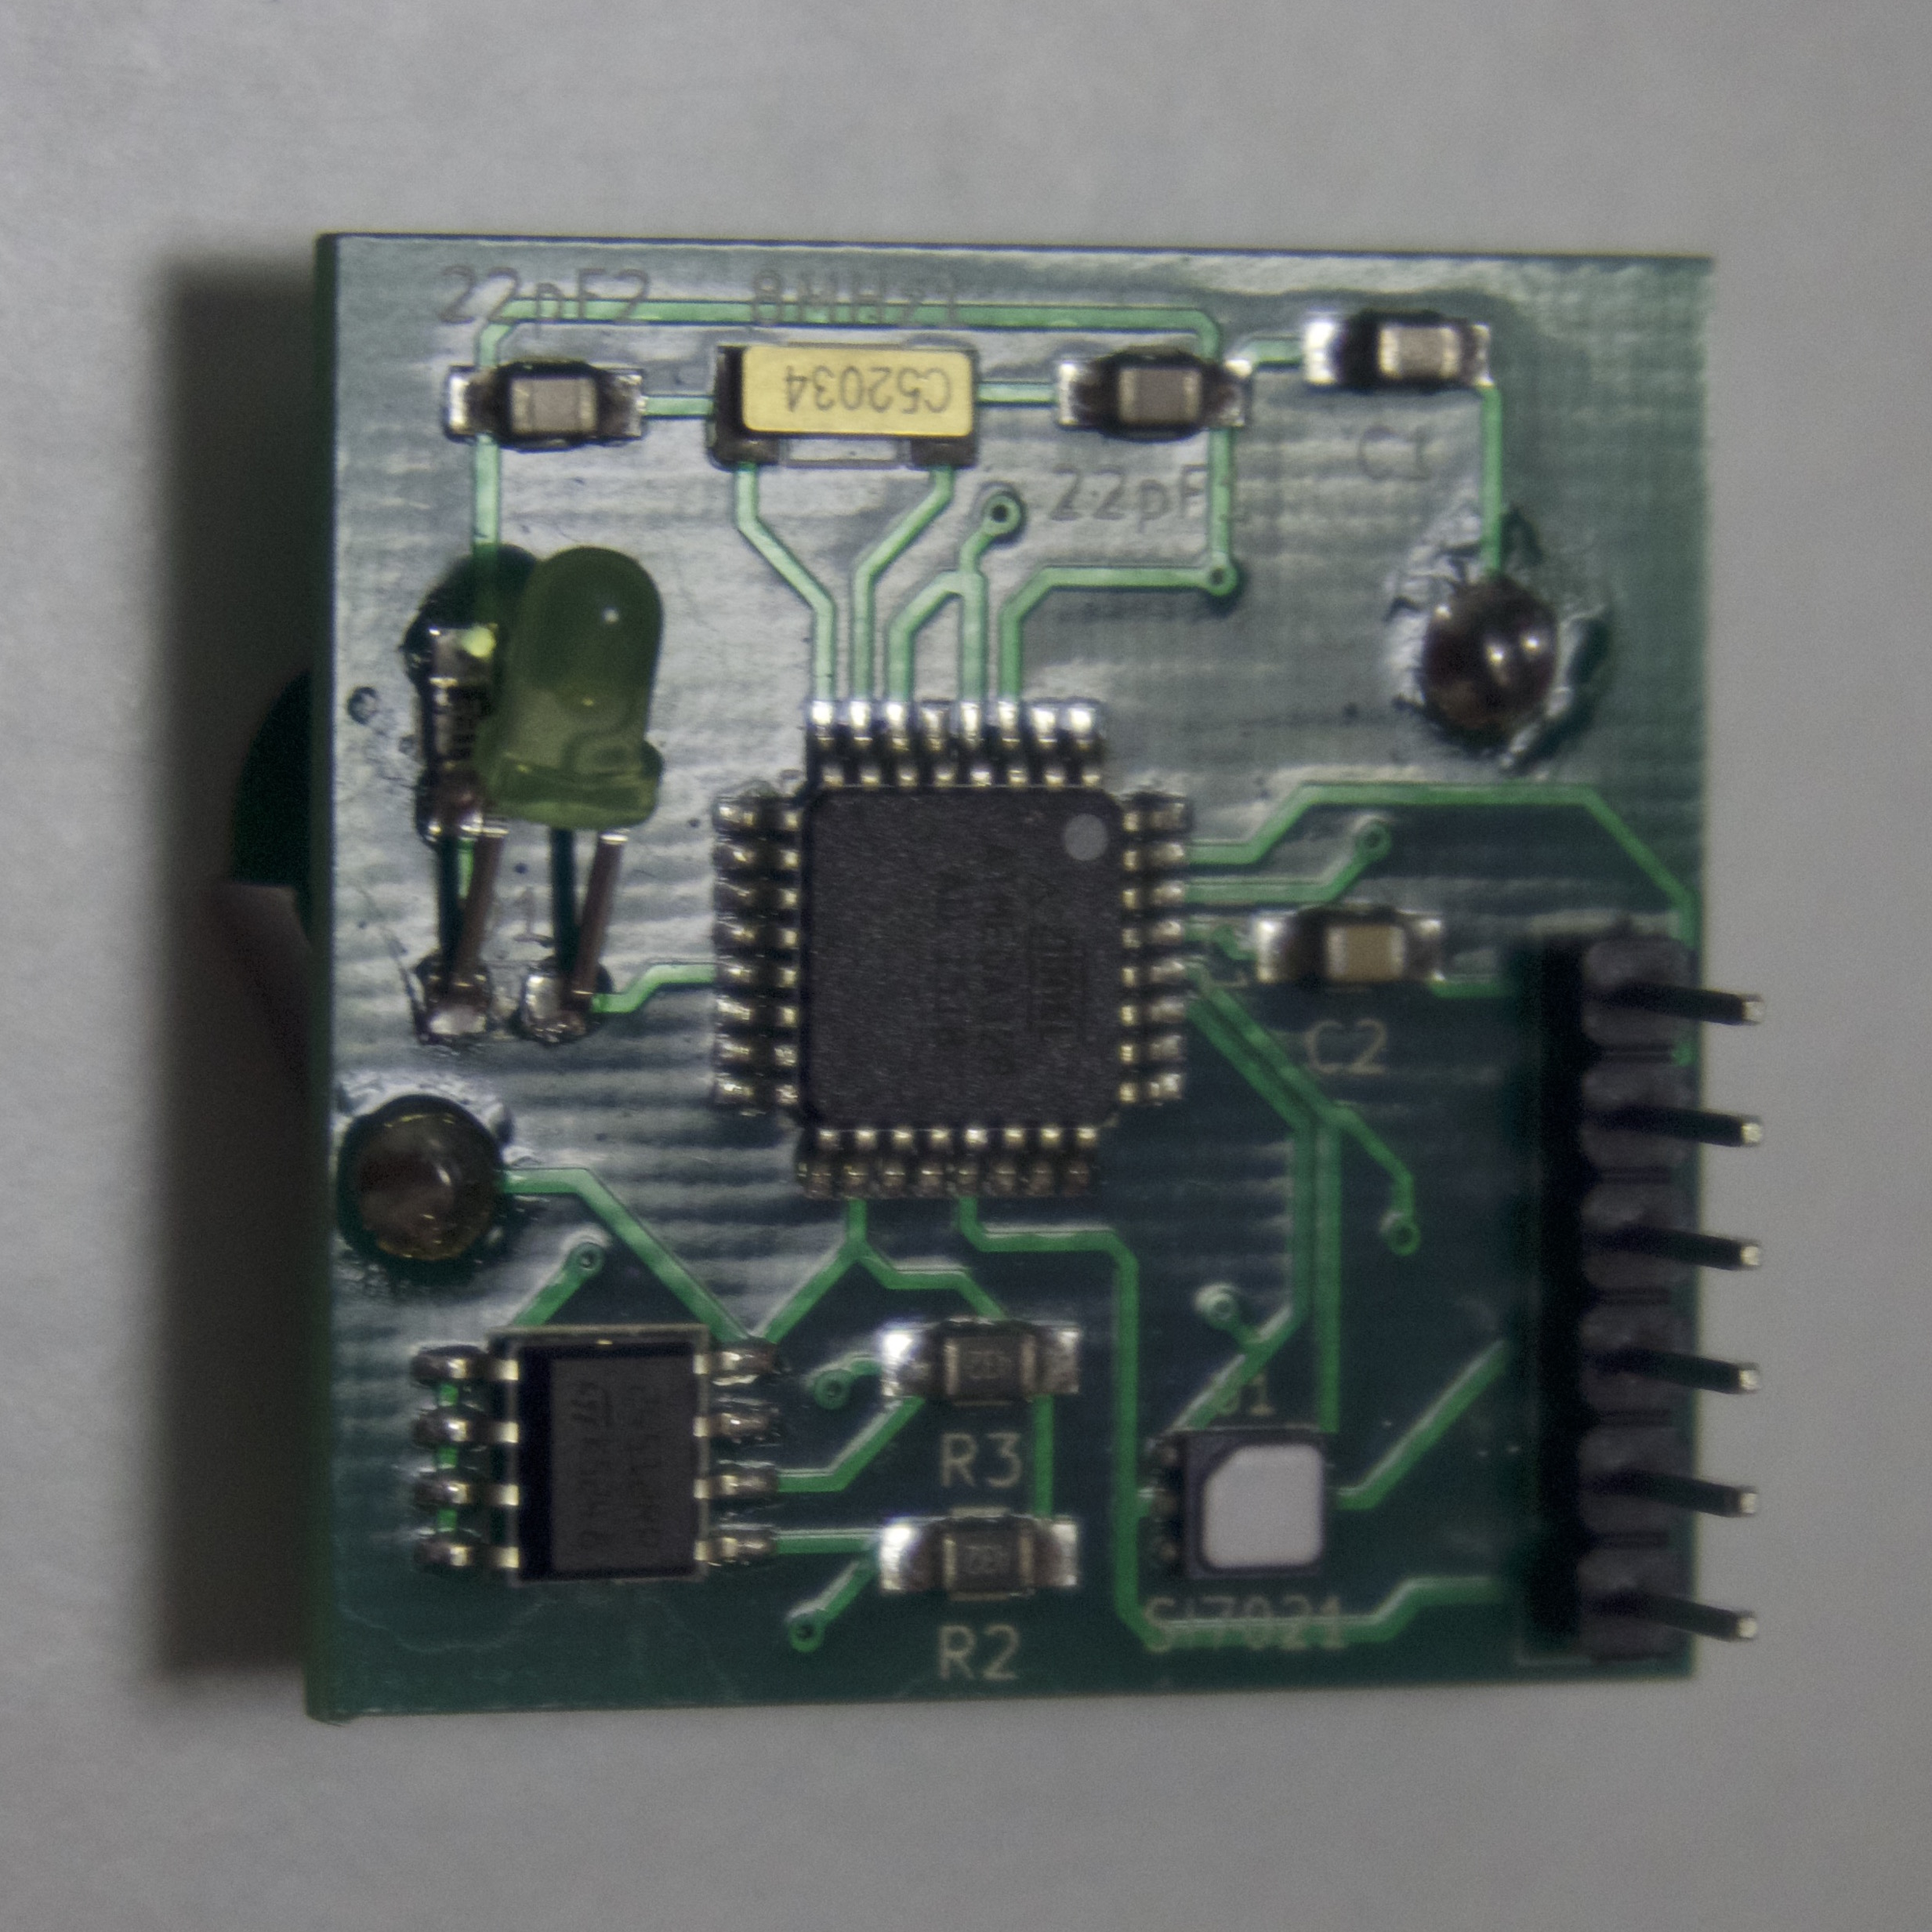 SMD Board Assembled (Front)